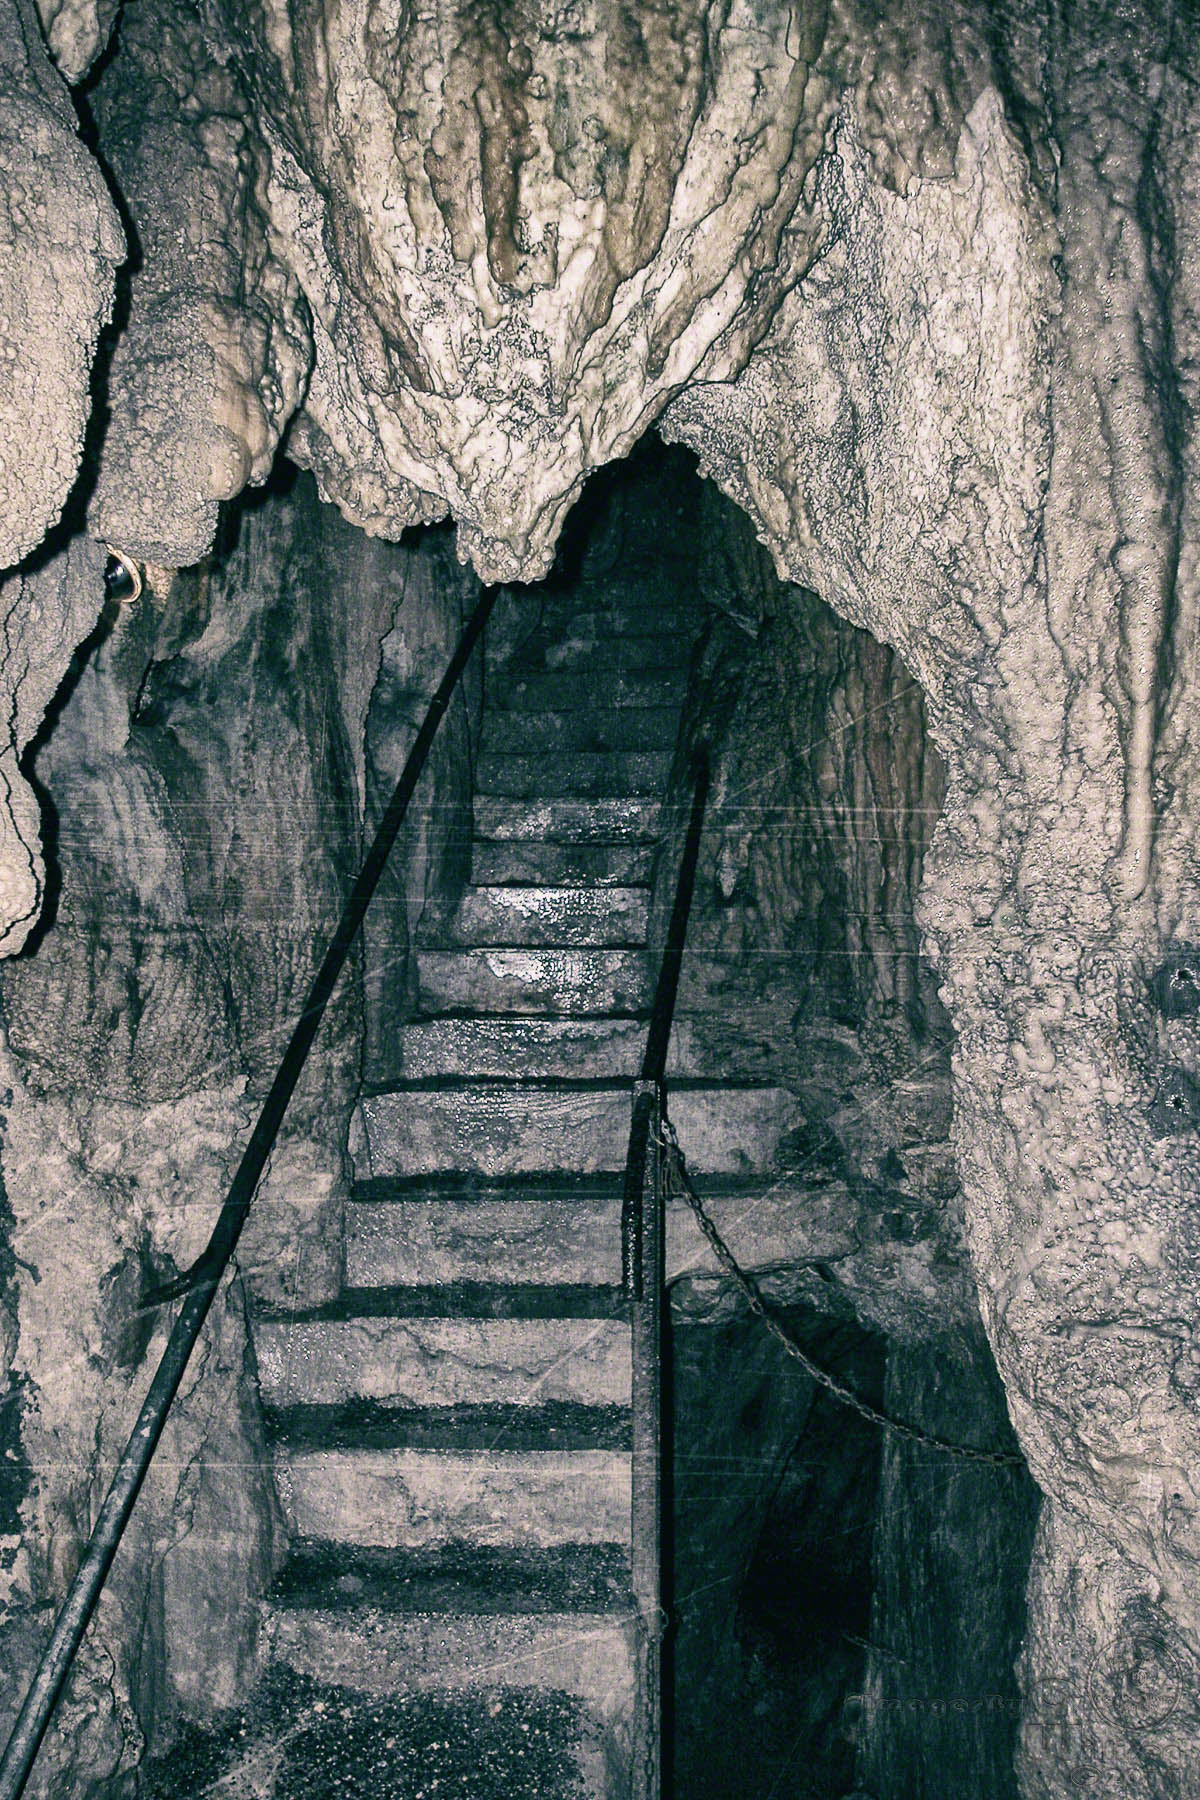 mine, hoellgrotten, grotte, stairs